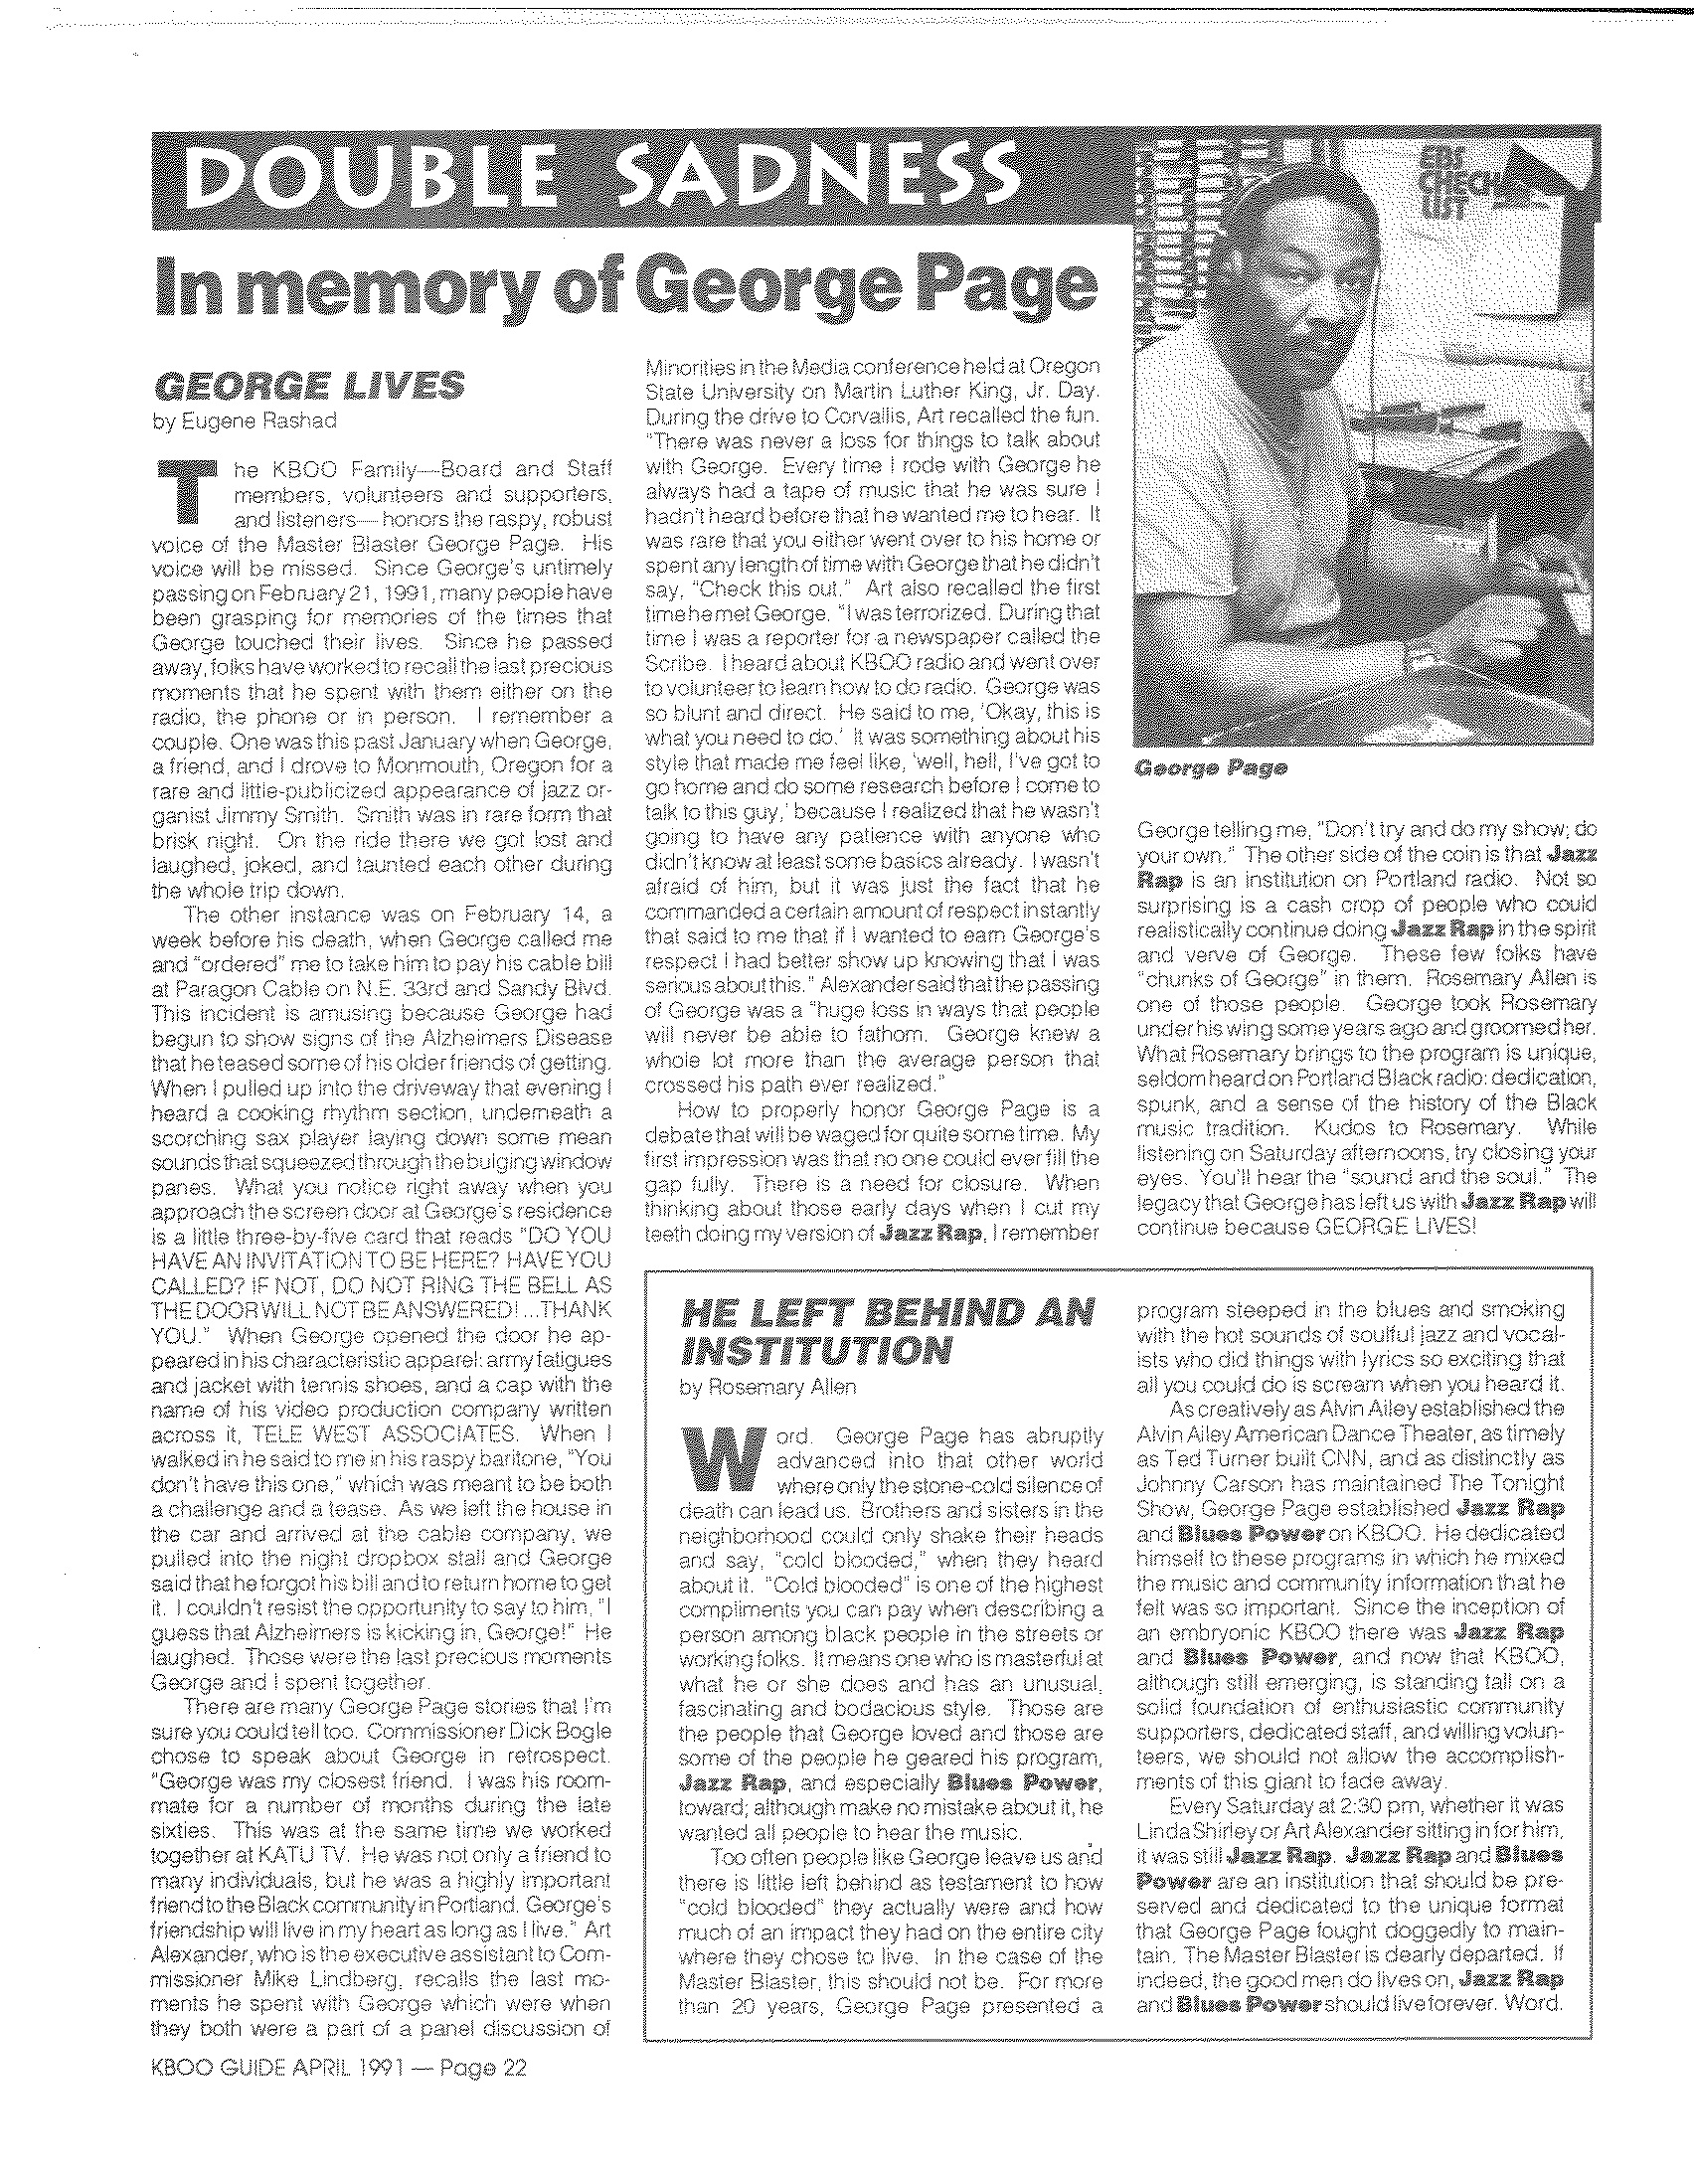 Article written in KBOO Guide after George Page's death in April 1991